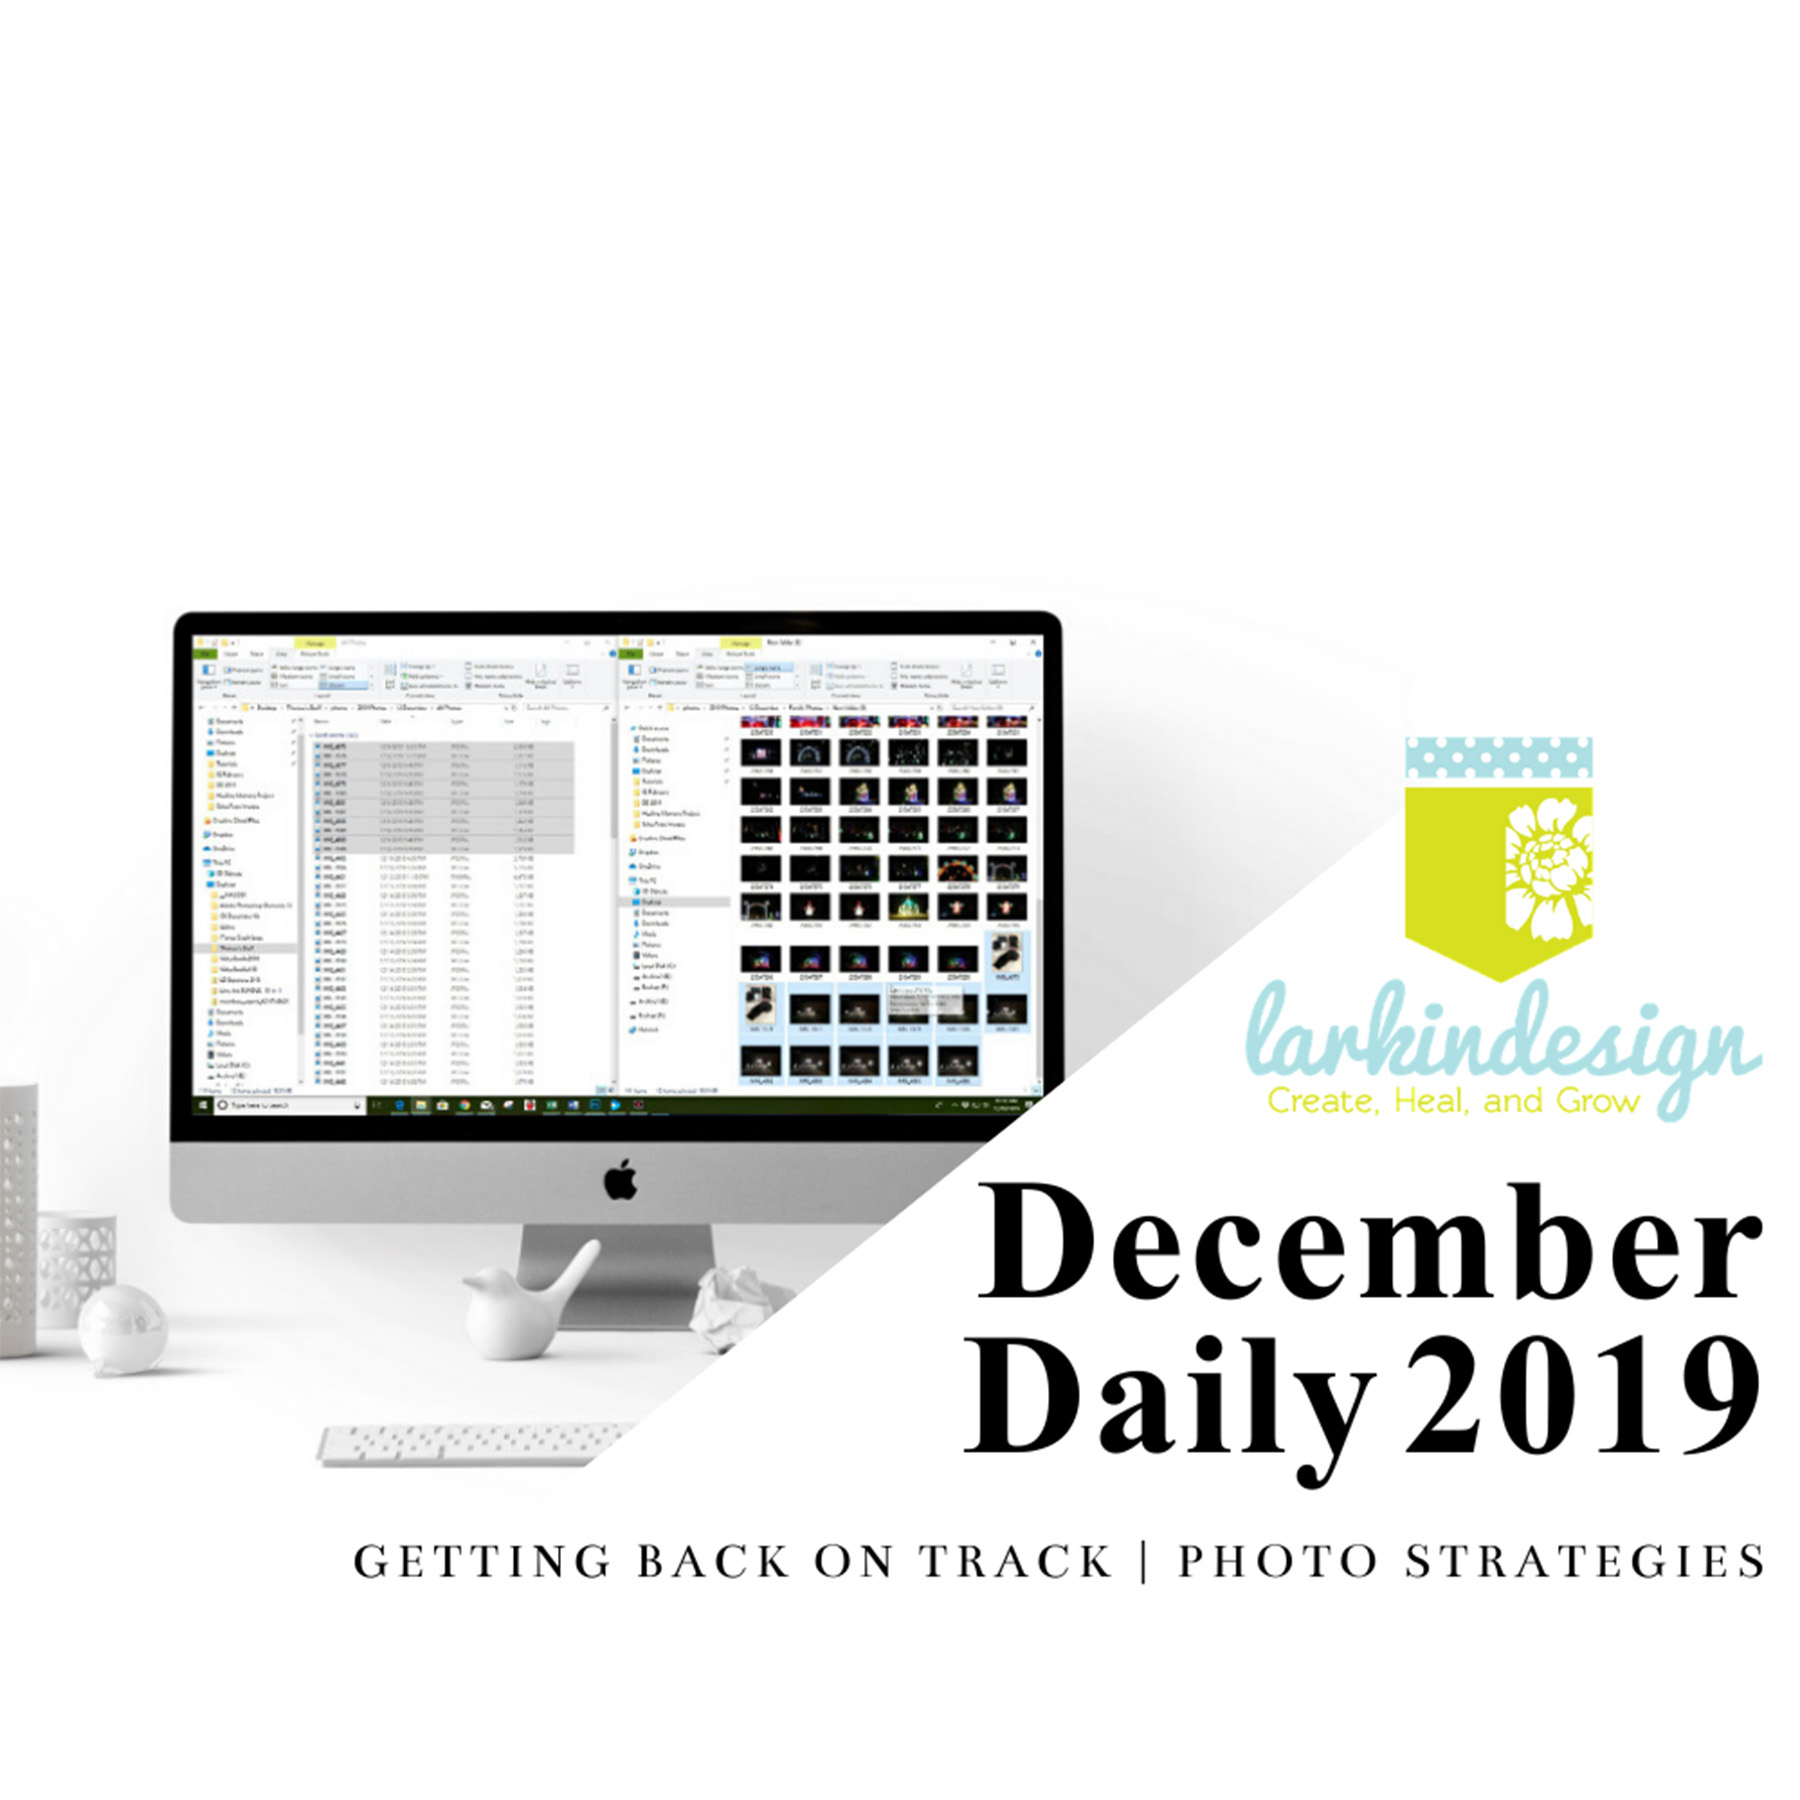 December Daily 2019 | Getting Back On Track Photo Strategies